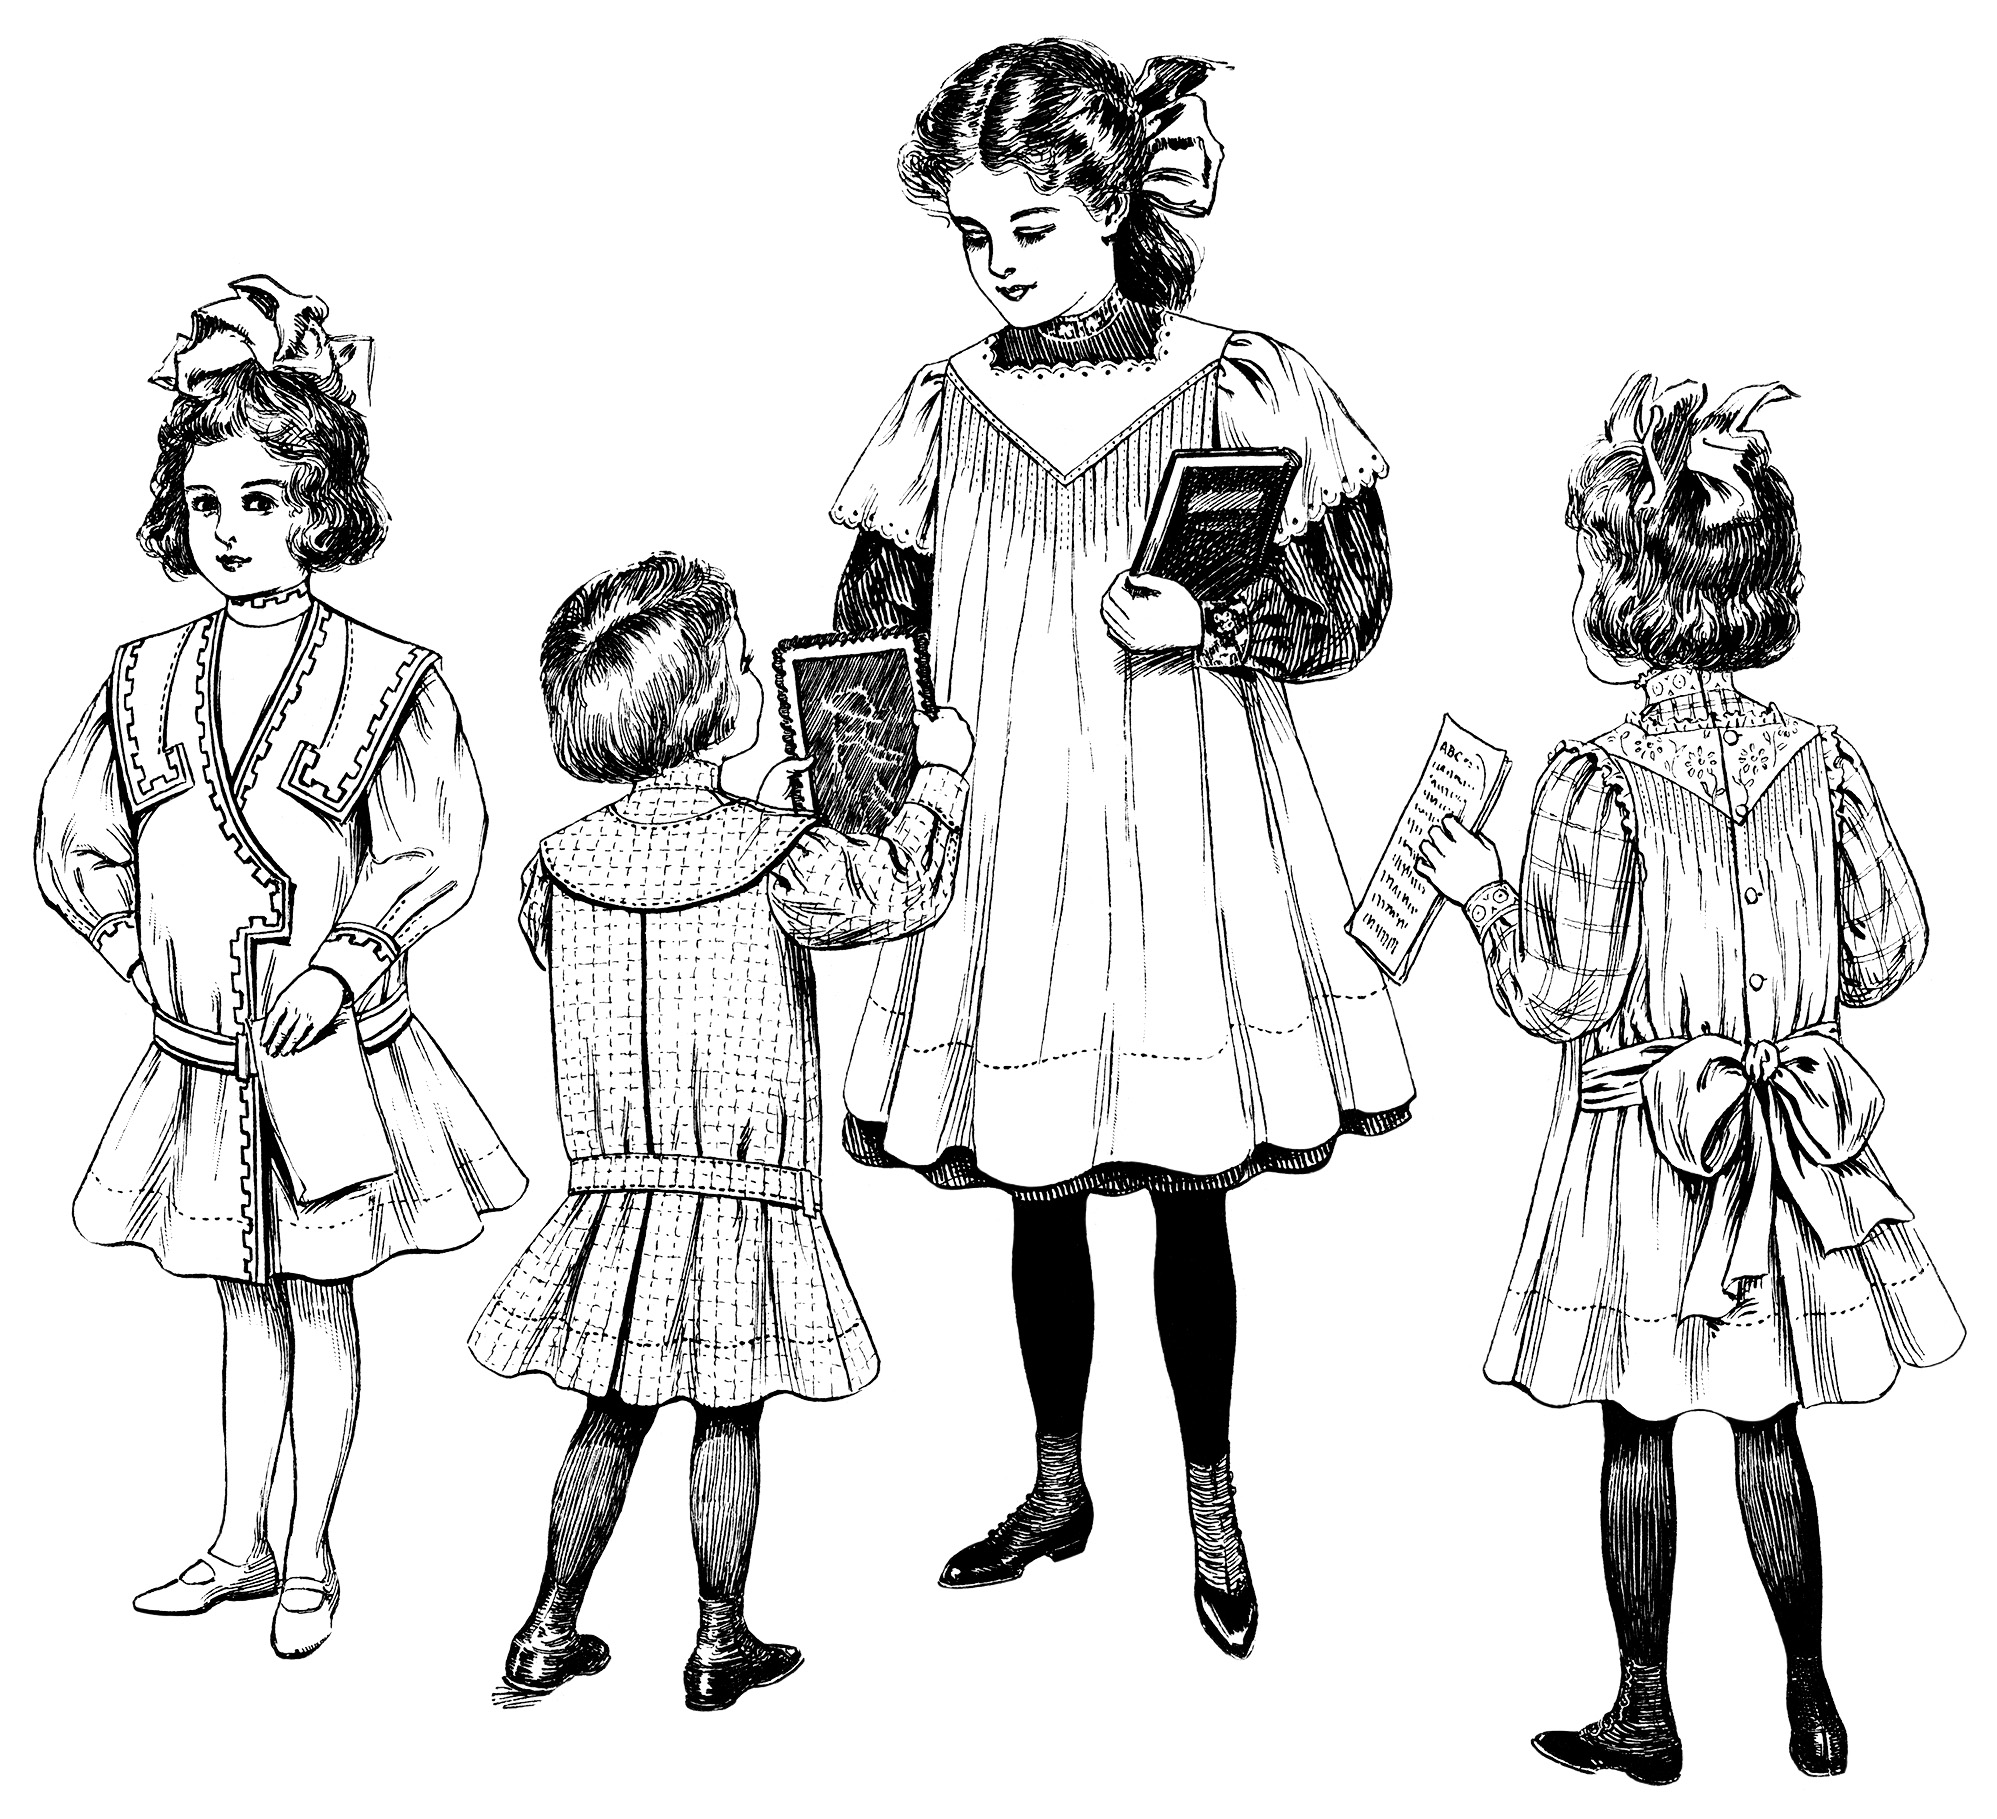 vintage children clip art, Edwardian girls fashion, free black and white clipart, school child illustration, old fashioned kids printable